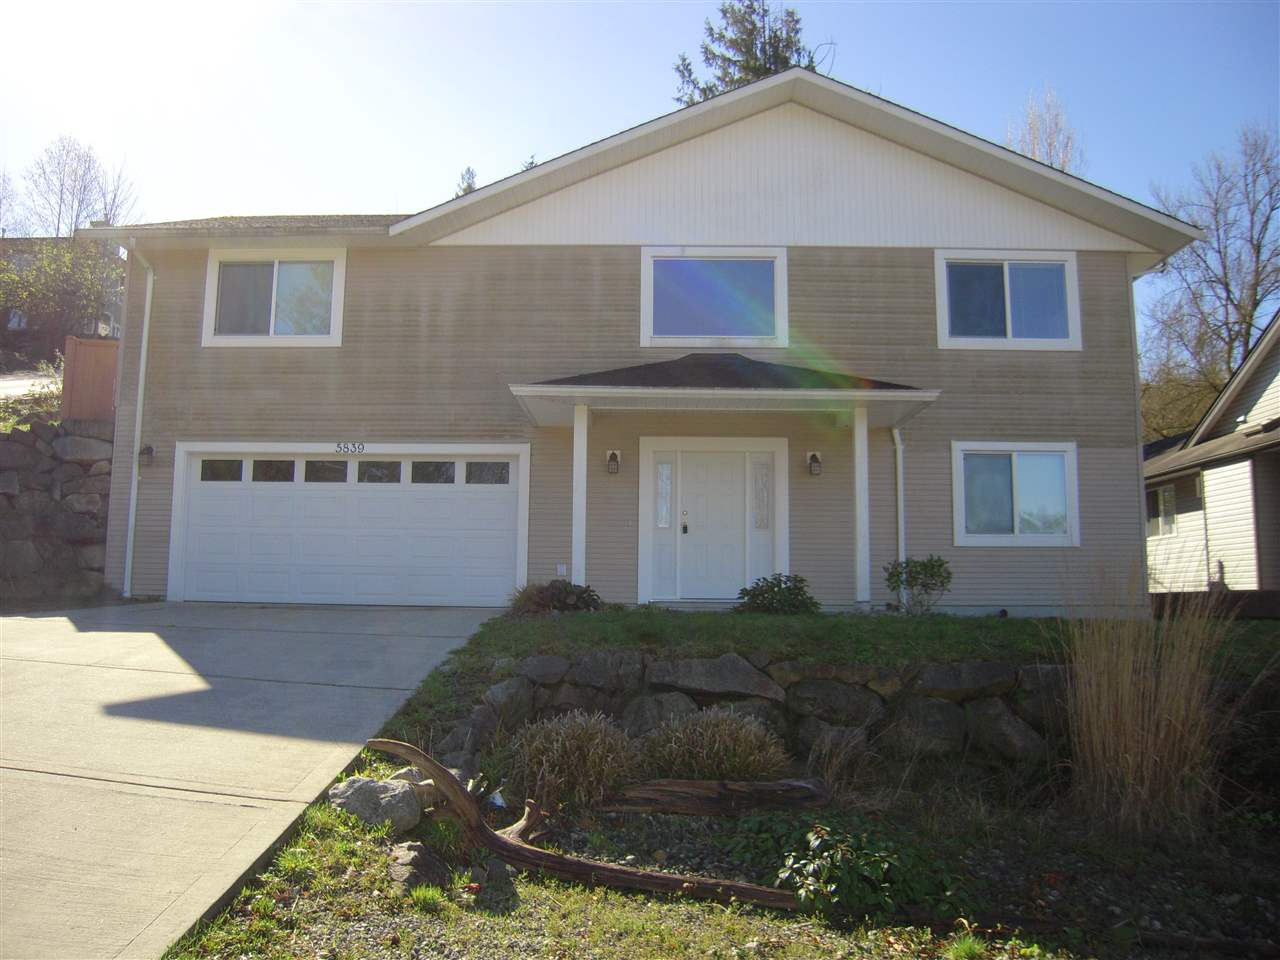 Photo 1: Photos: 5839 TRAIL Avenue in Sechelt: Sechelt District House for sale (Sunshine Coast)  : MLS®# R2046032